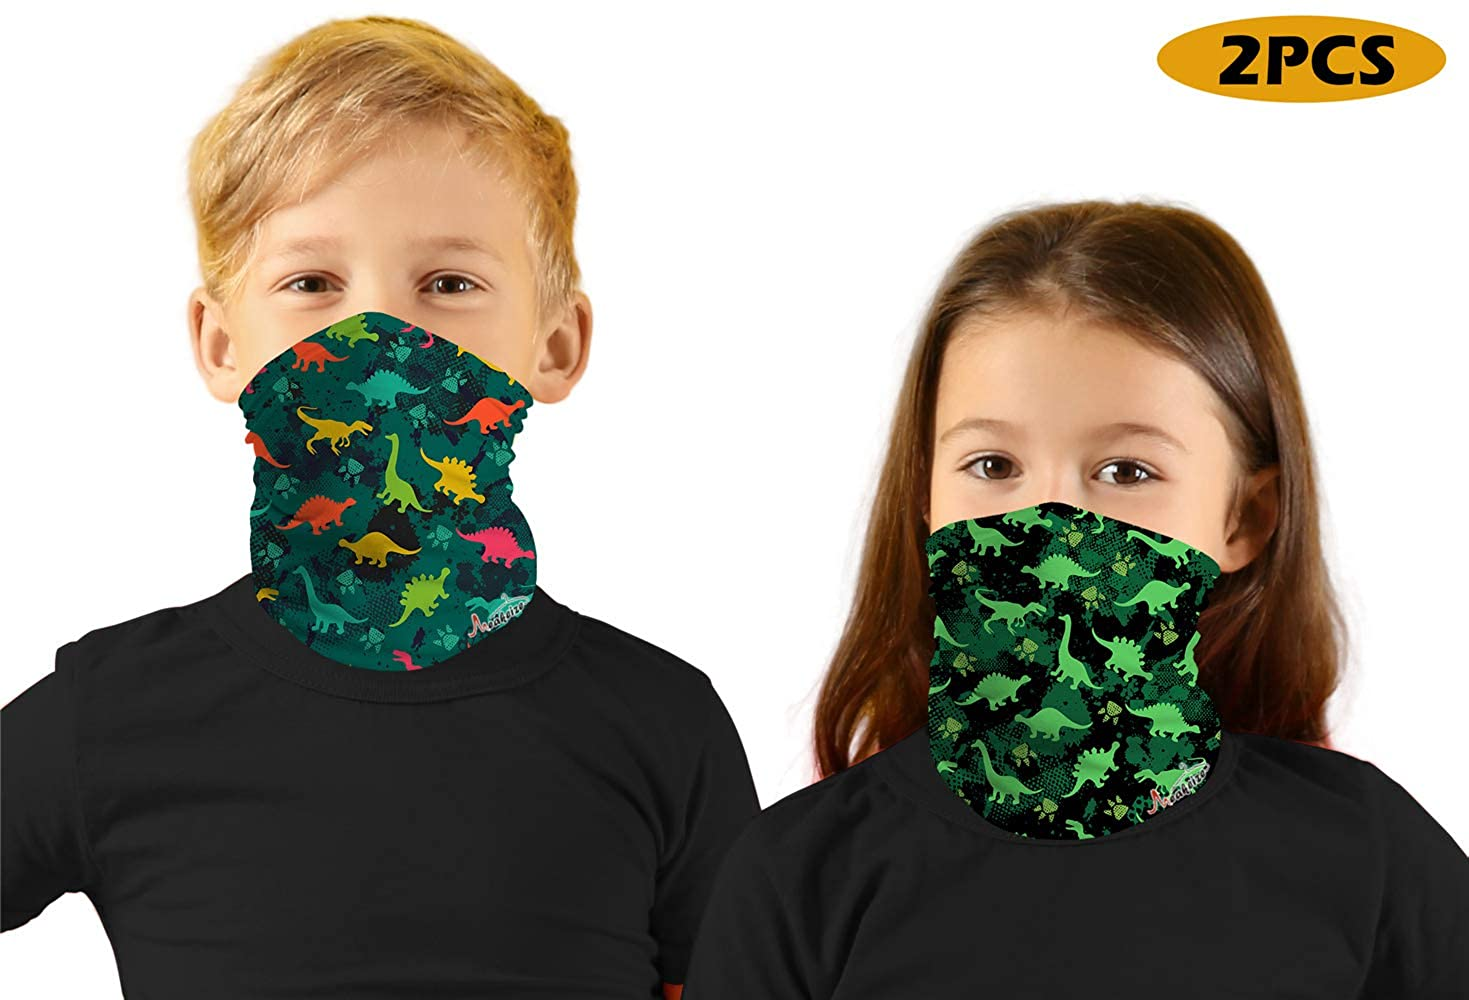 meakeize 2 PCS Kids Sibling Bandanas Face Mask UV Protectio Neck Gaiter Headband - Dust Block Balaclavas